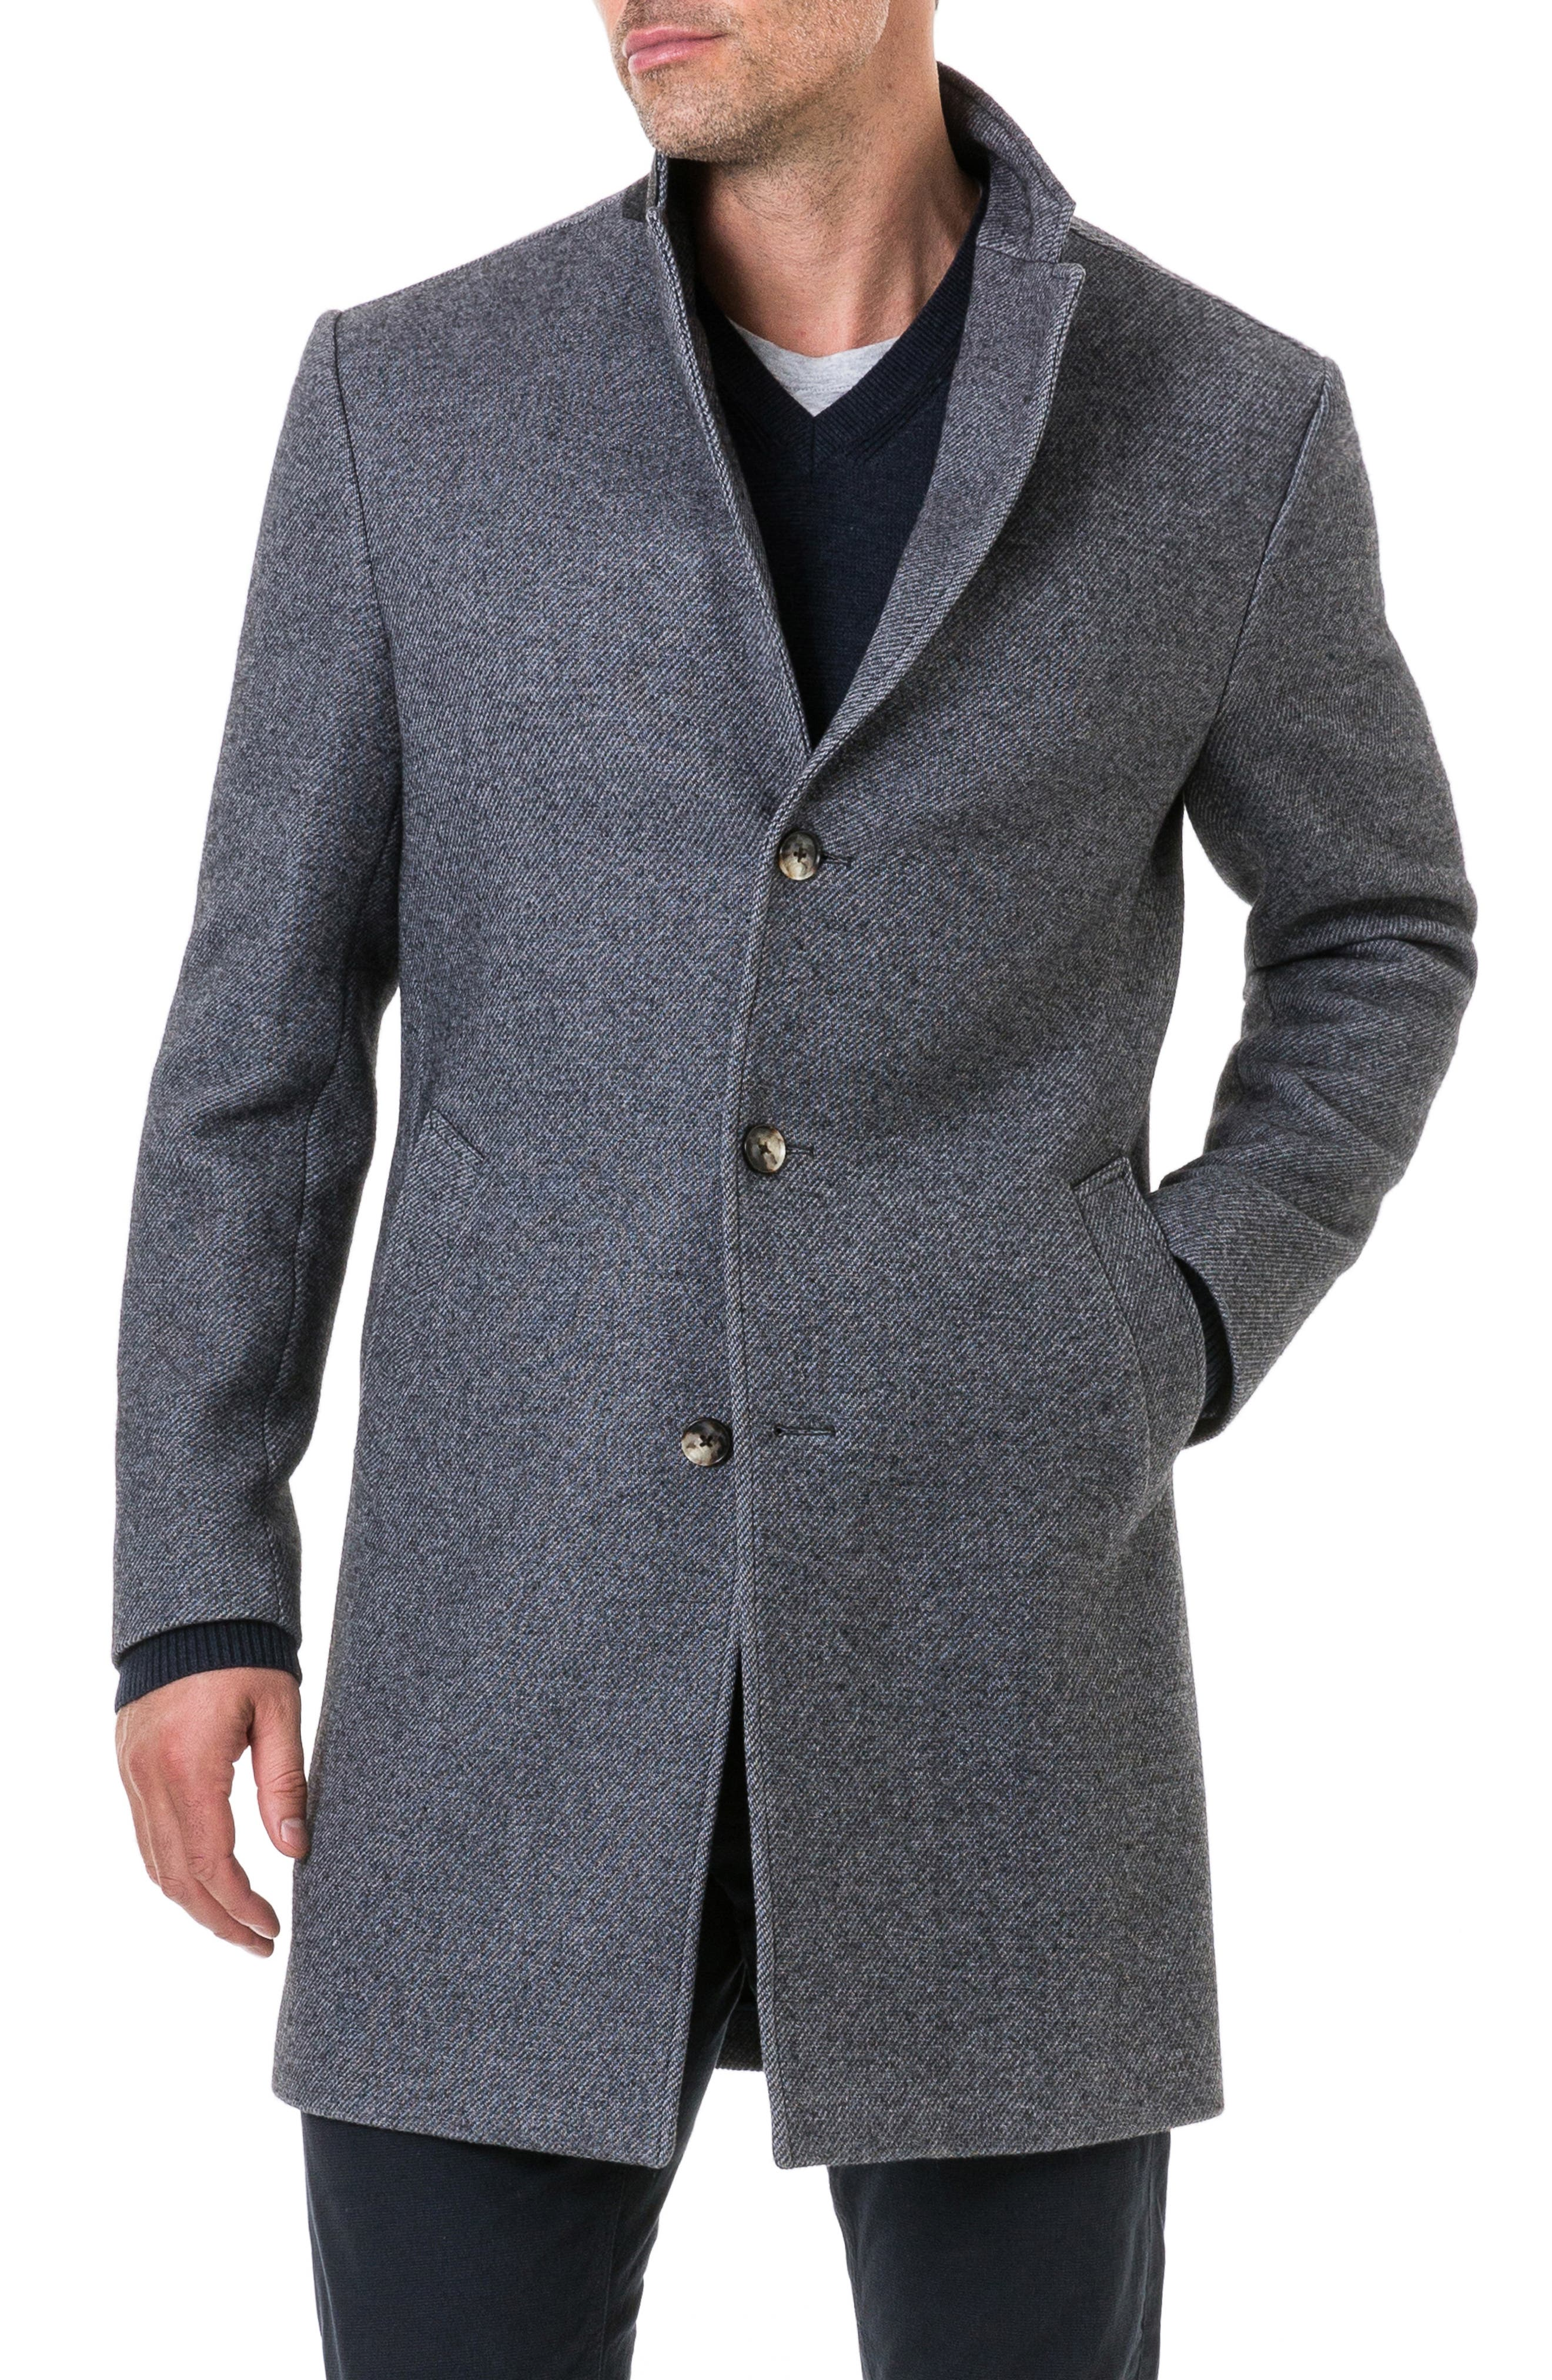 Calton Hill Wool Blend Coat,                         Main,                         color, 020